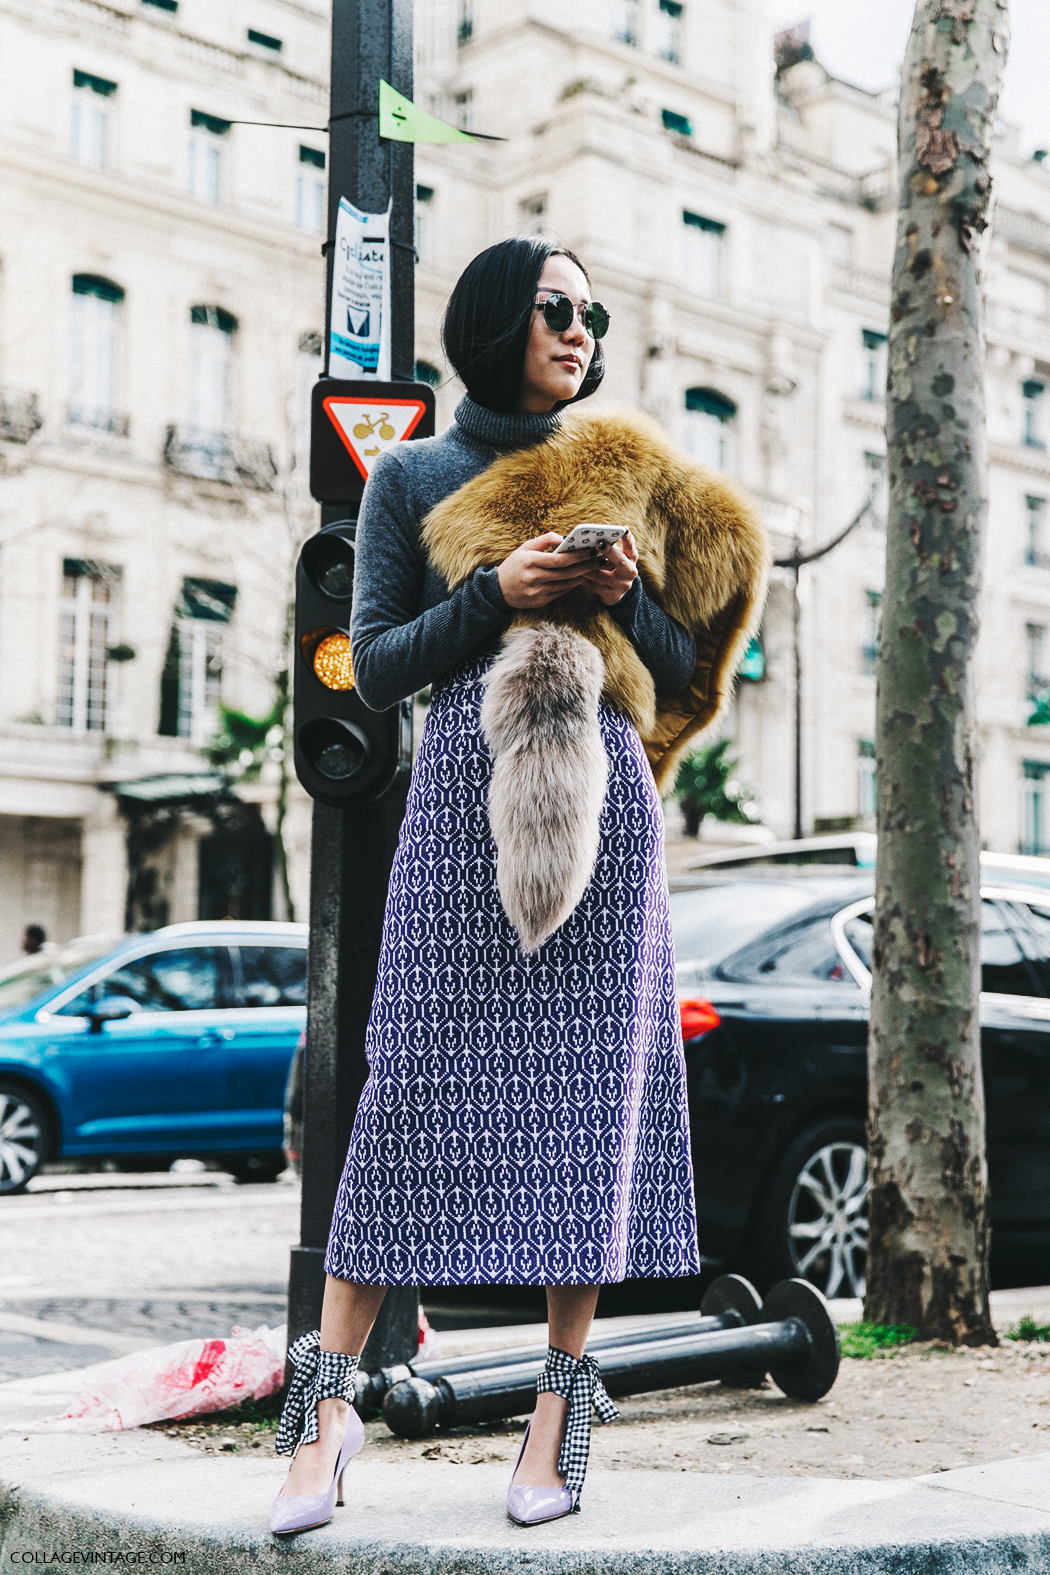 PFW-Paris_Fashion_Week_Fall_2016-Street_Style-Collage_Vintage-Miu_Miu-Yoyo_Cao-Pencil_Skirt-Purple-2